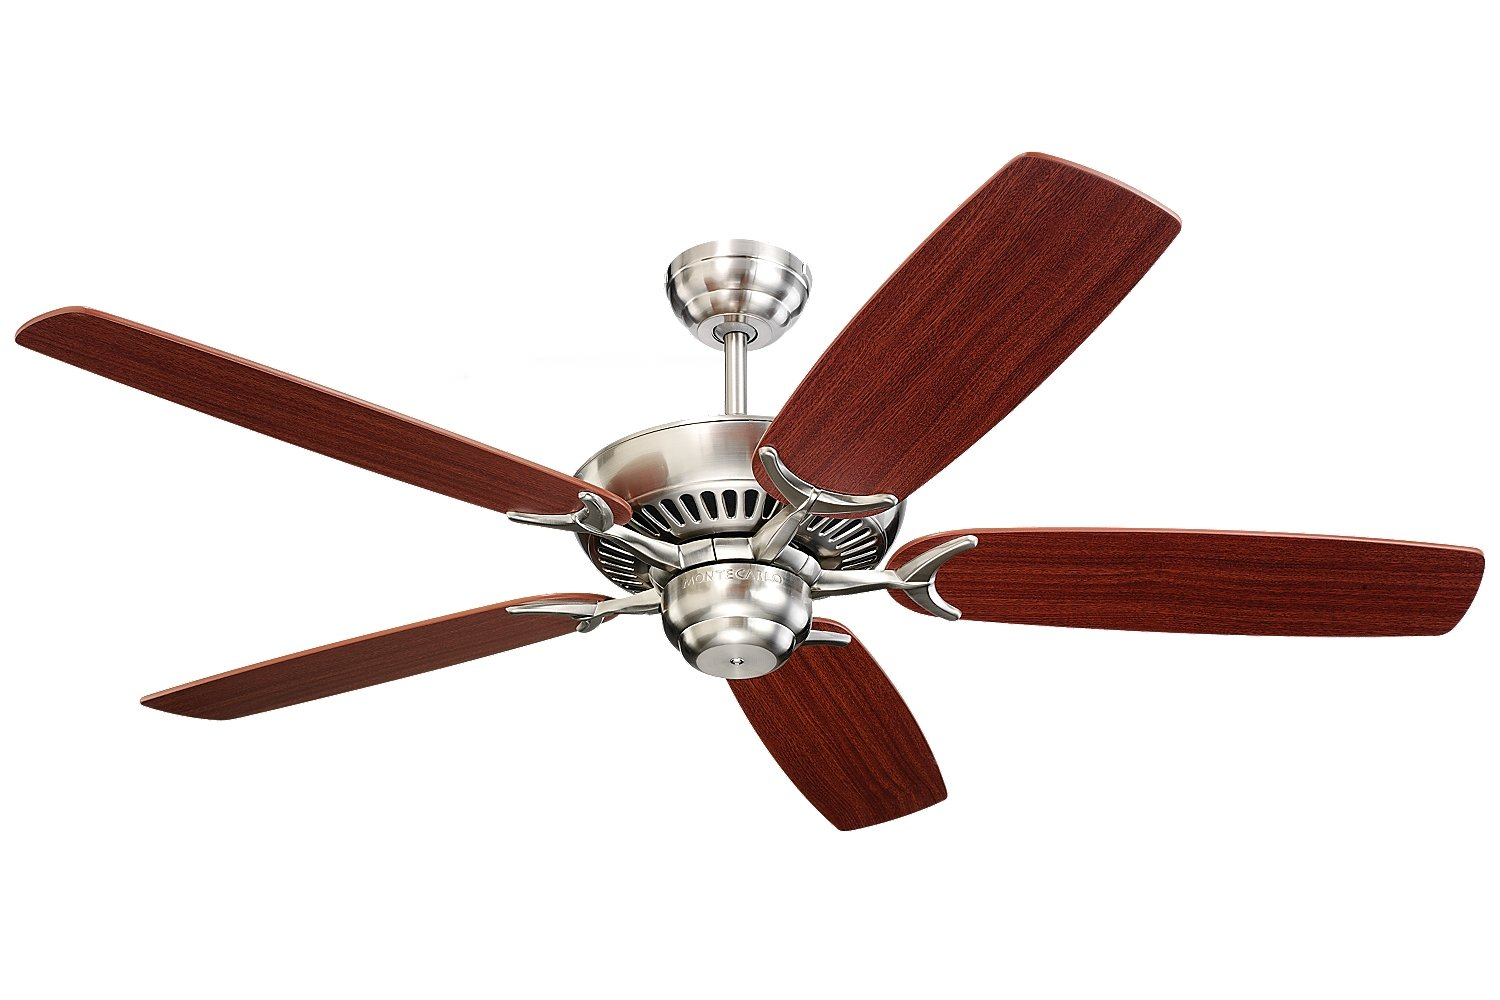 Monte carlo 5co52bs colony 52 inch 5 blade ceiling fan with motor monte carlo 5co52bs colony 52 inch 5 blade ceiling fan with motor and mahogany blades brushed steel amazon aloadofball Image collections